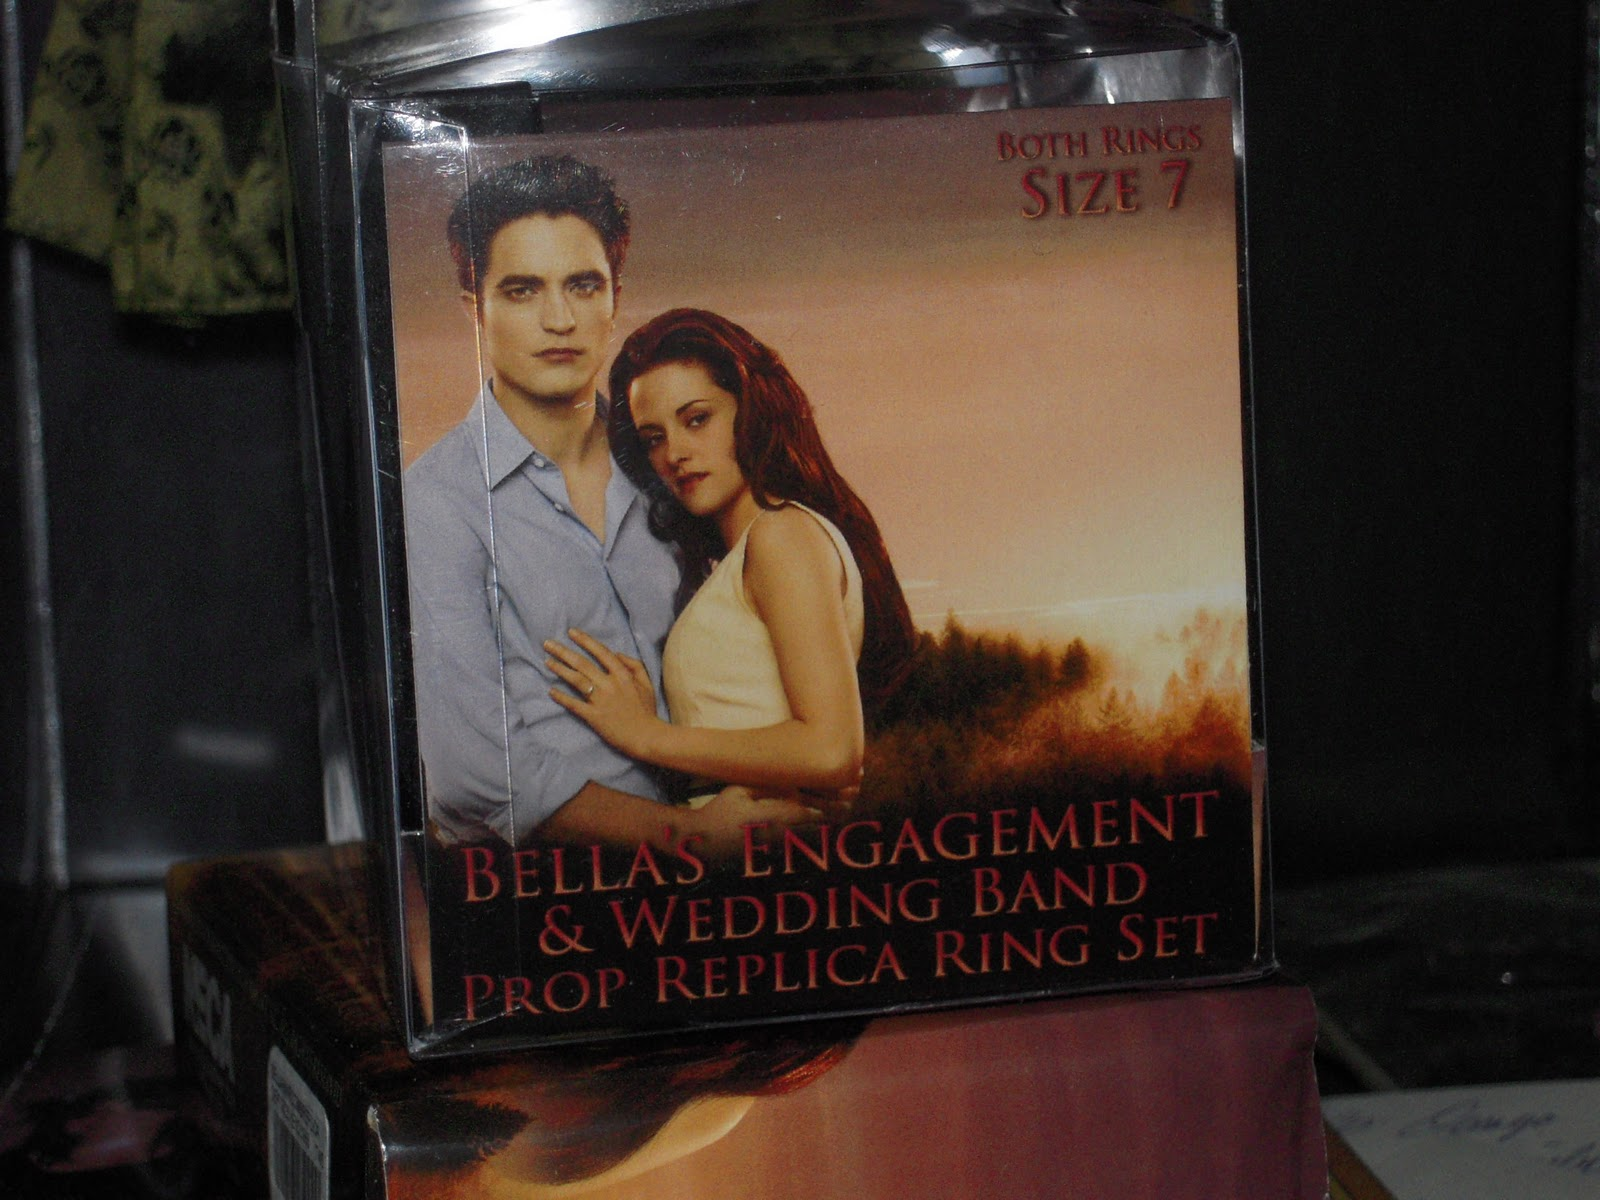 so i purchased this beautiful ring set bella's wedding ring Breaking Dawn Part 1 Bella s Engagement and Wedding Ring